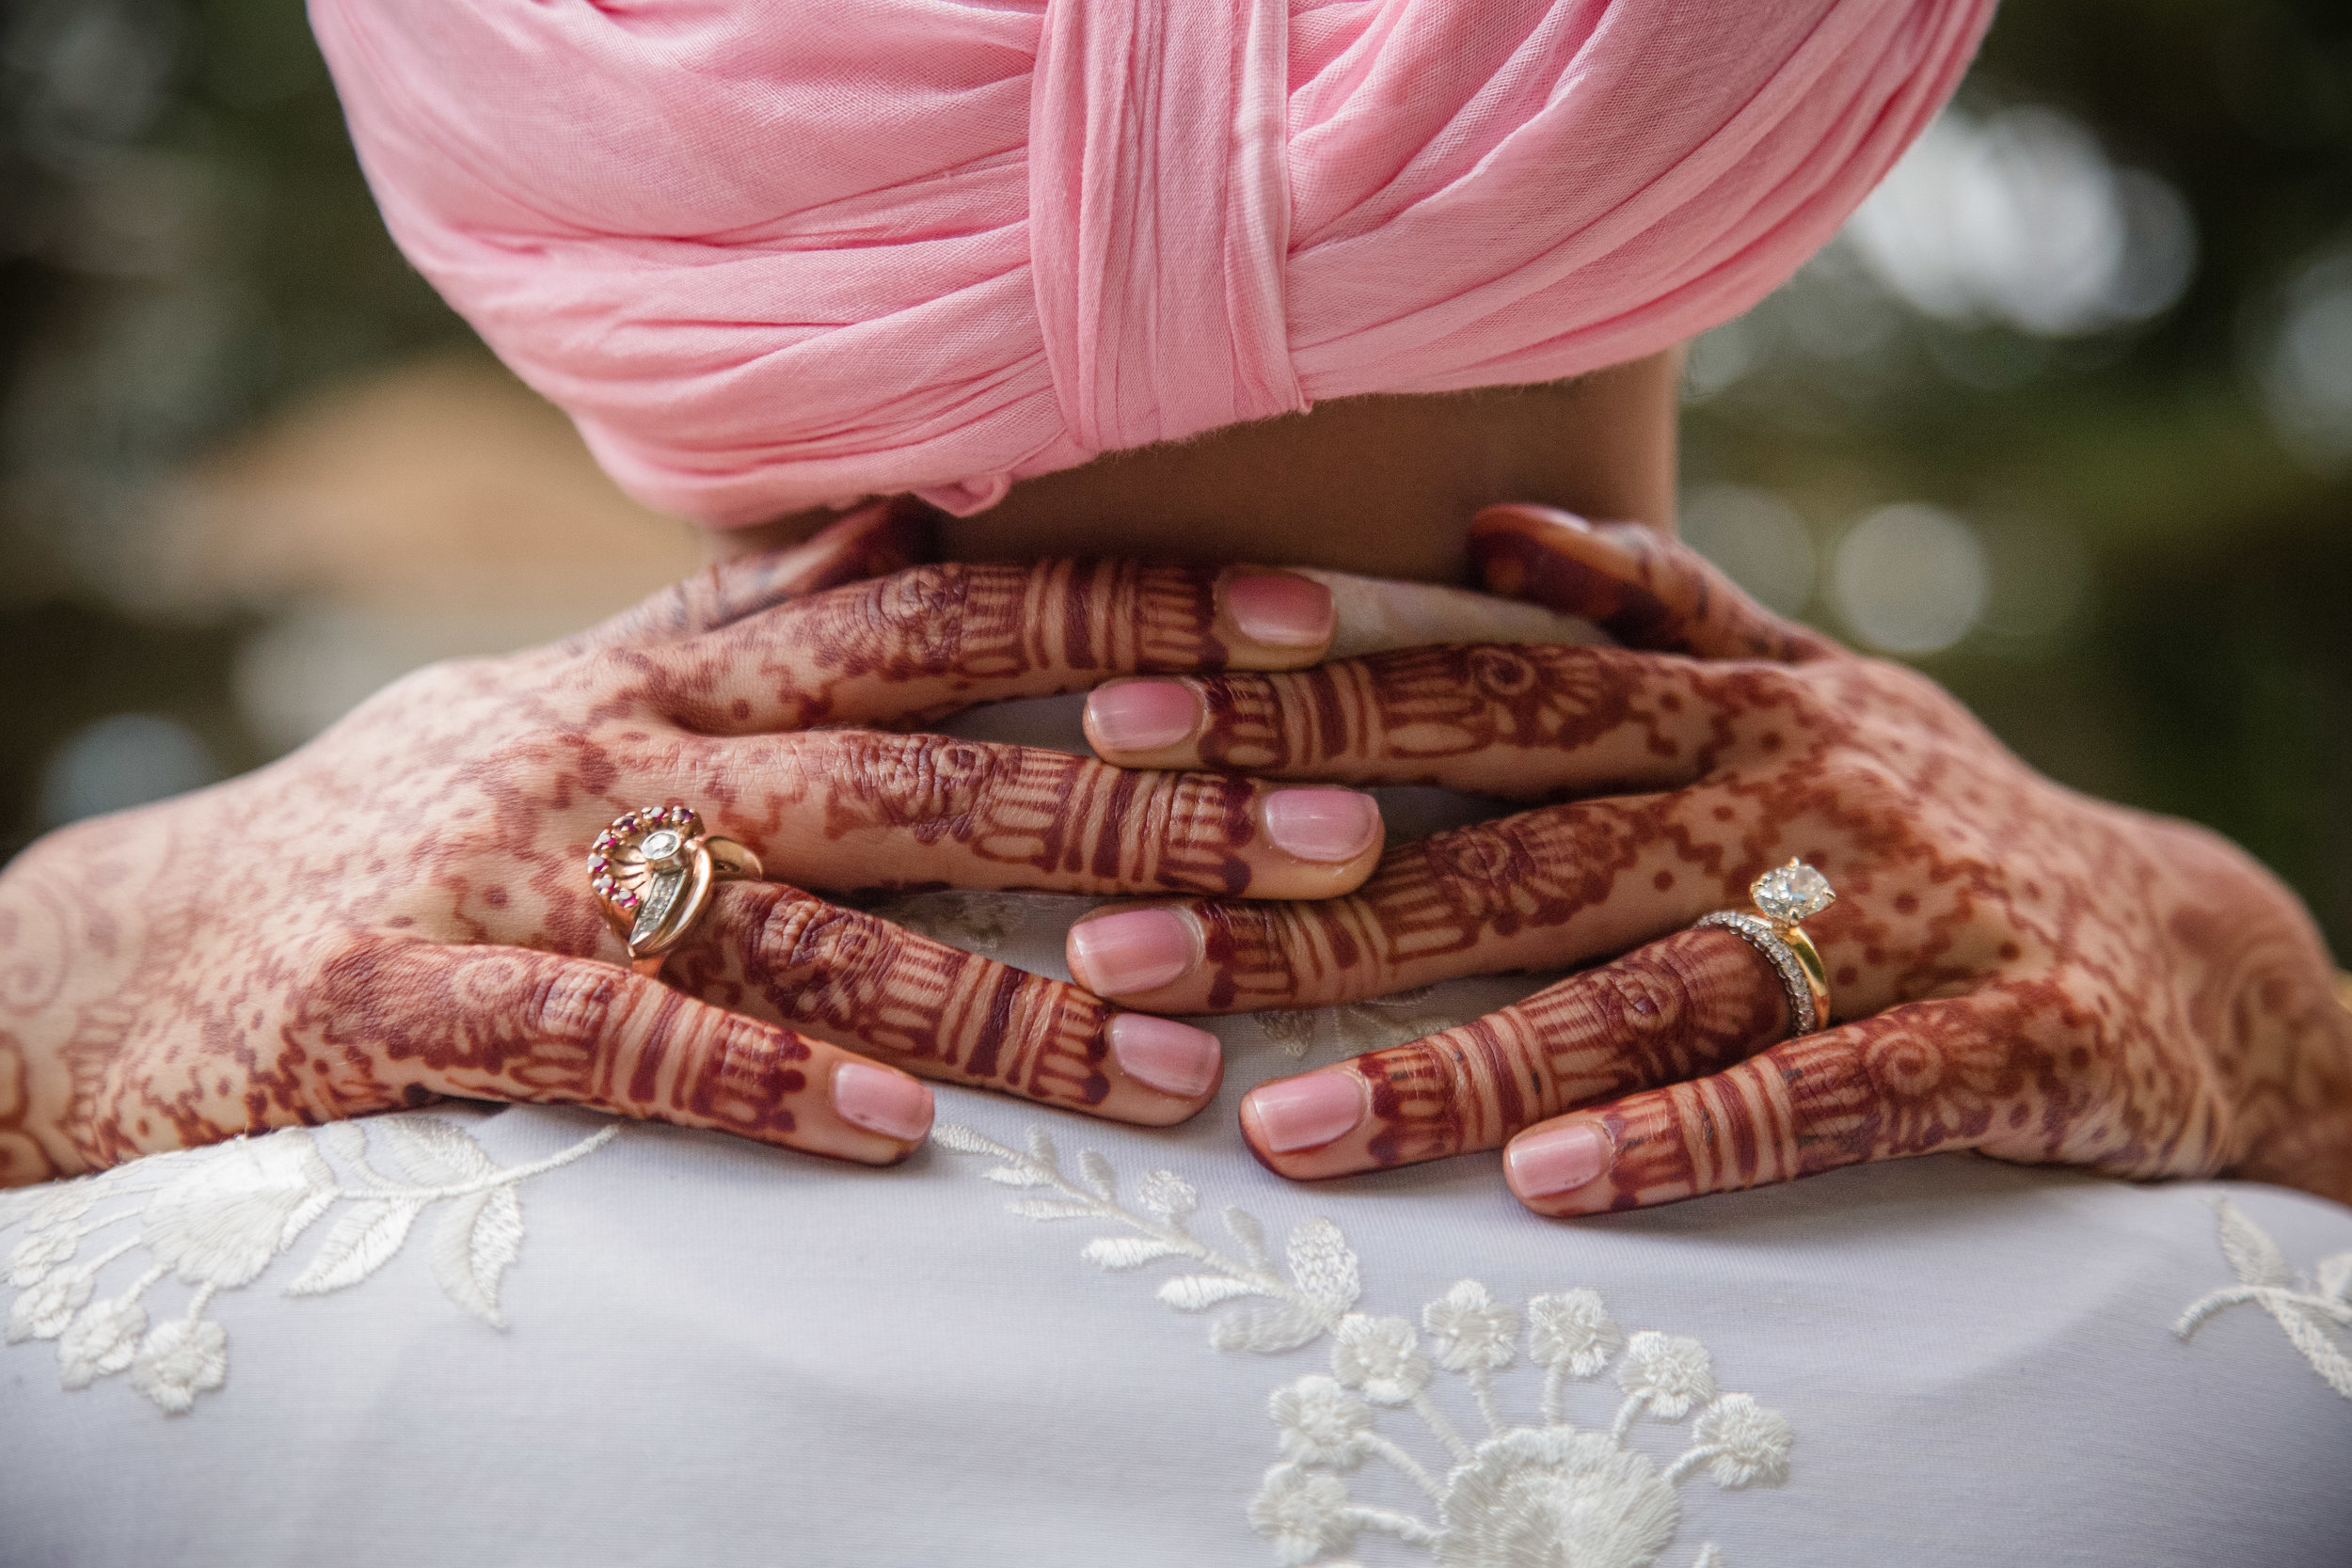 Hands and Henna